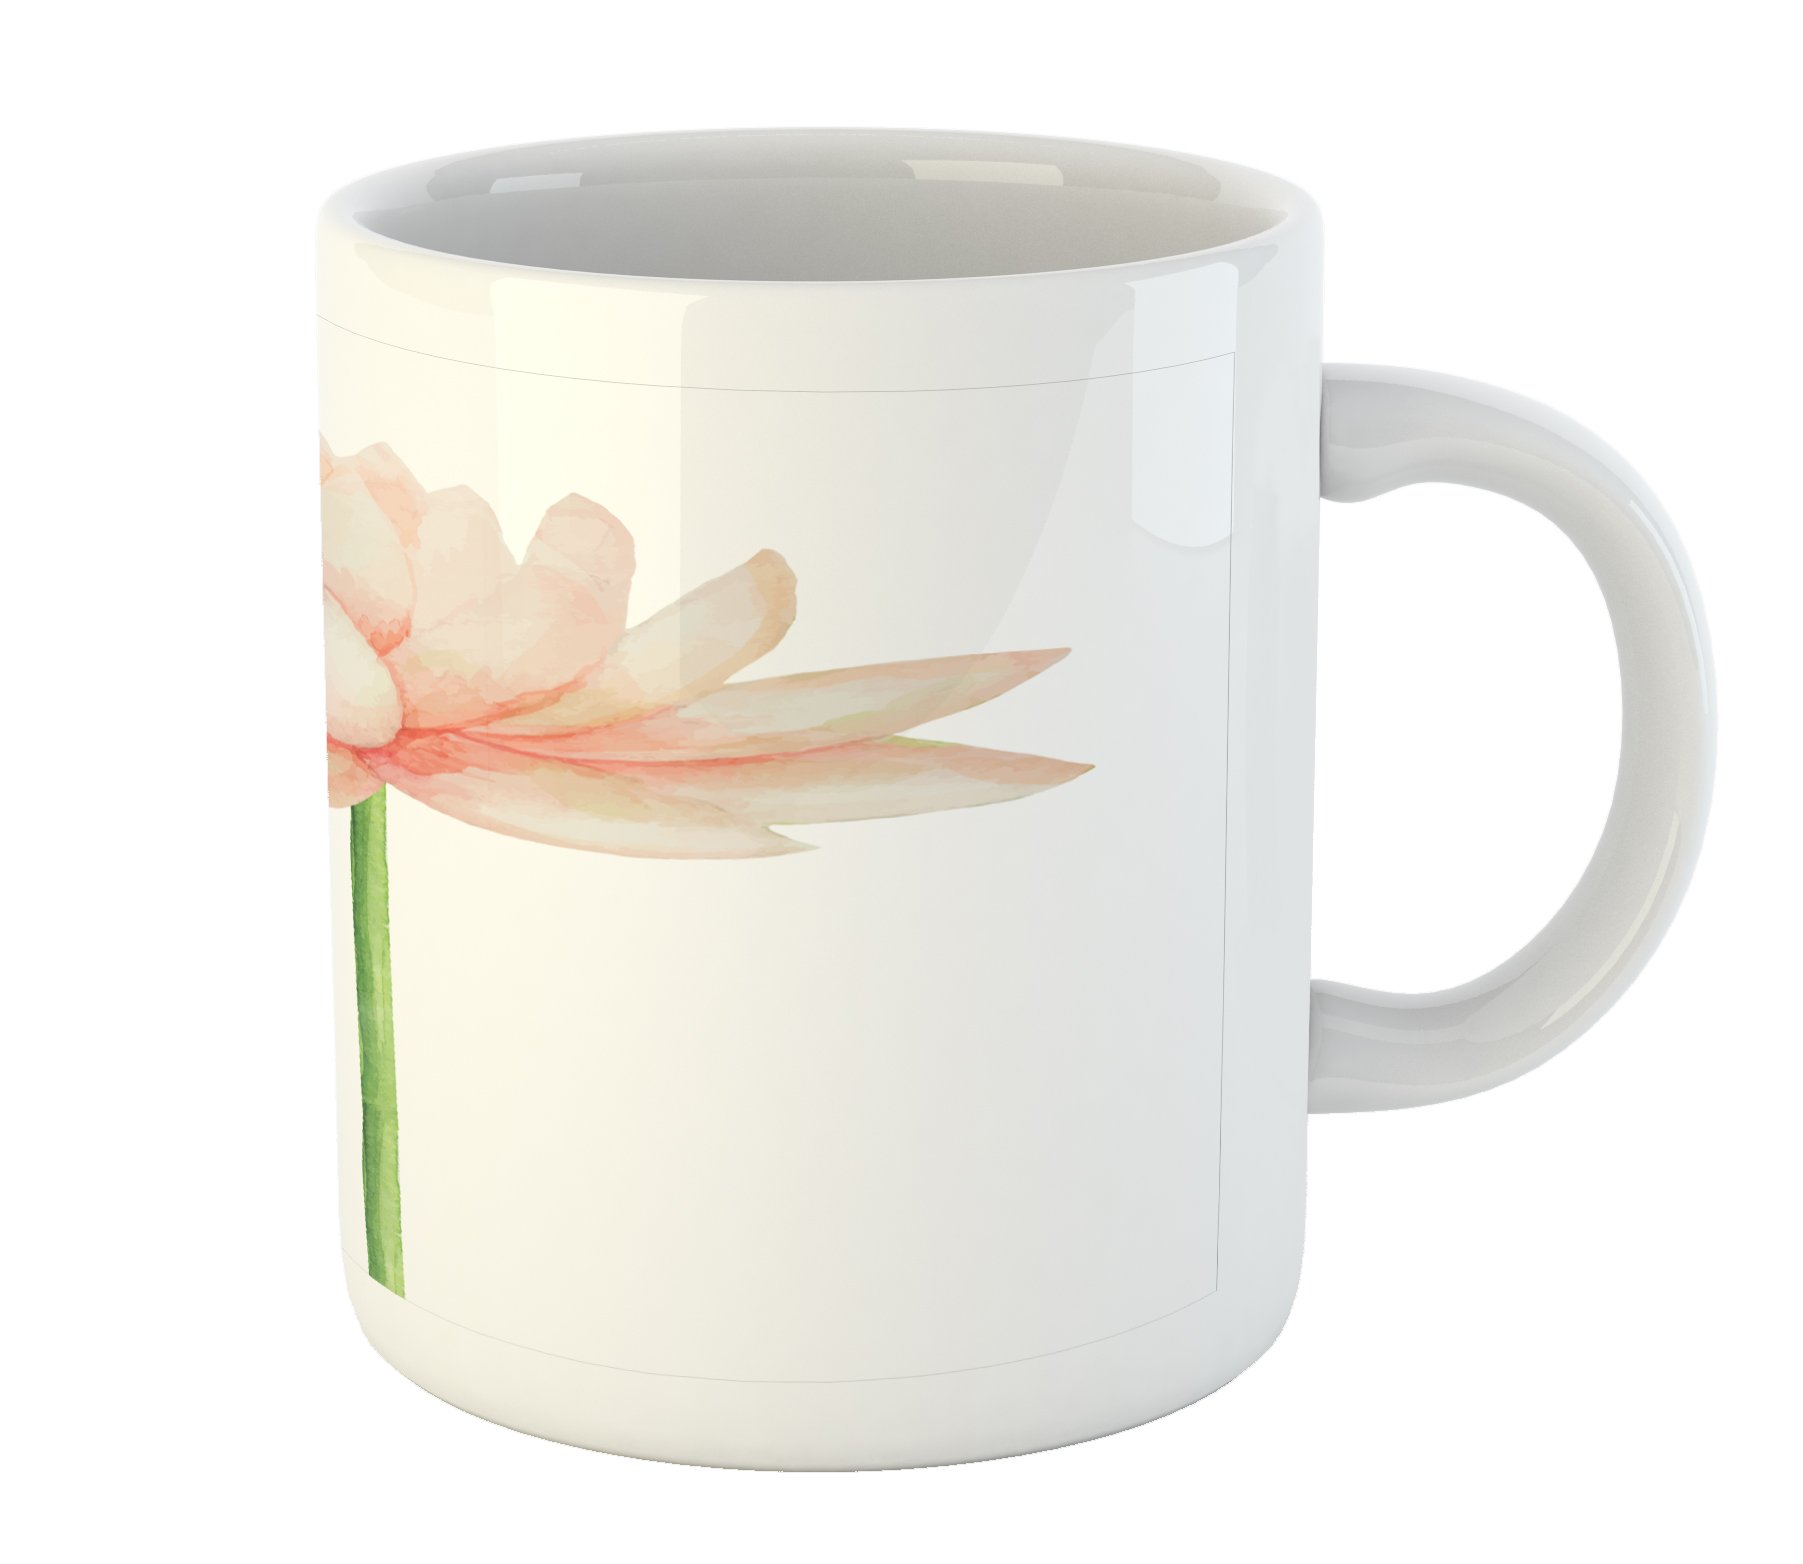 Ambesonne Yoga Mug, Pastel Colored Blooming Lotus Flower Romantic Fresh Garden Plant Spa Theme, Printed Ceramic Coffee Mug Water Tea Drinks Cup, Peach Green and White by Ambesonne (Image #2)